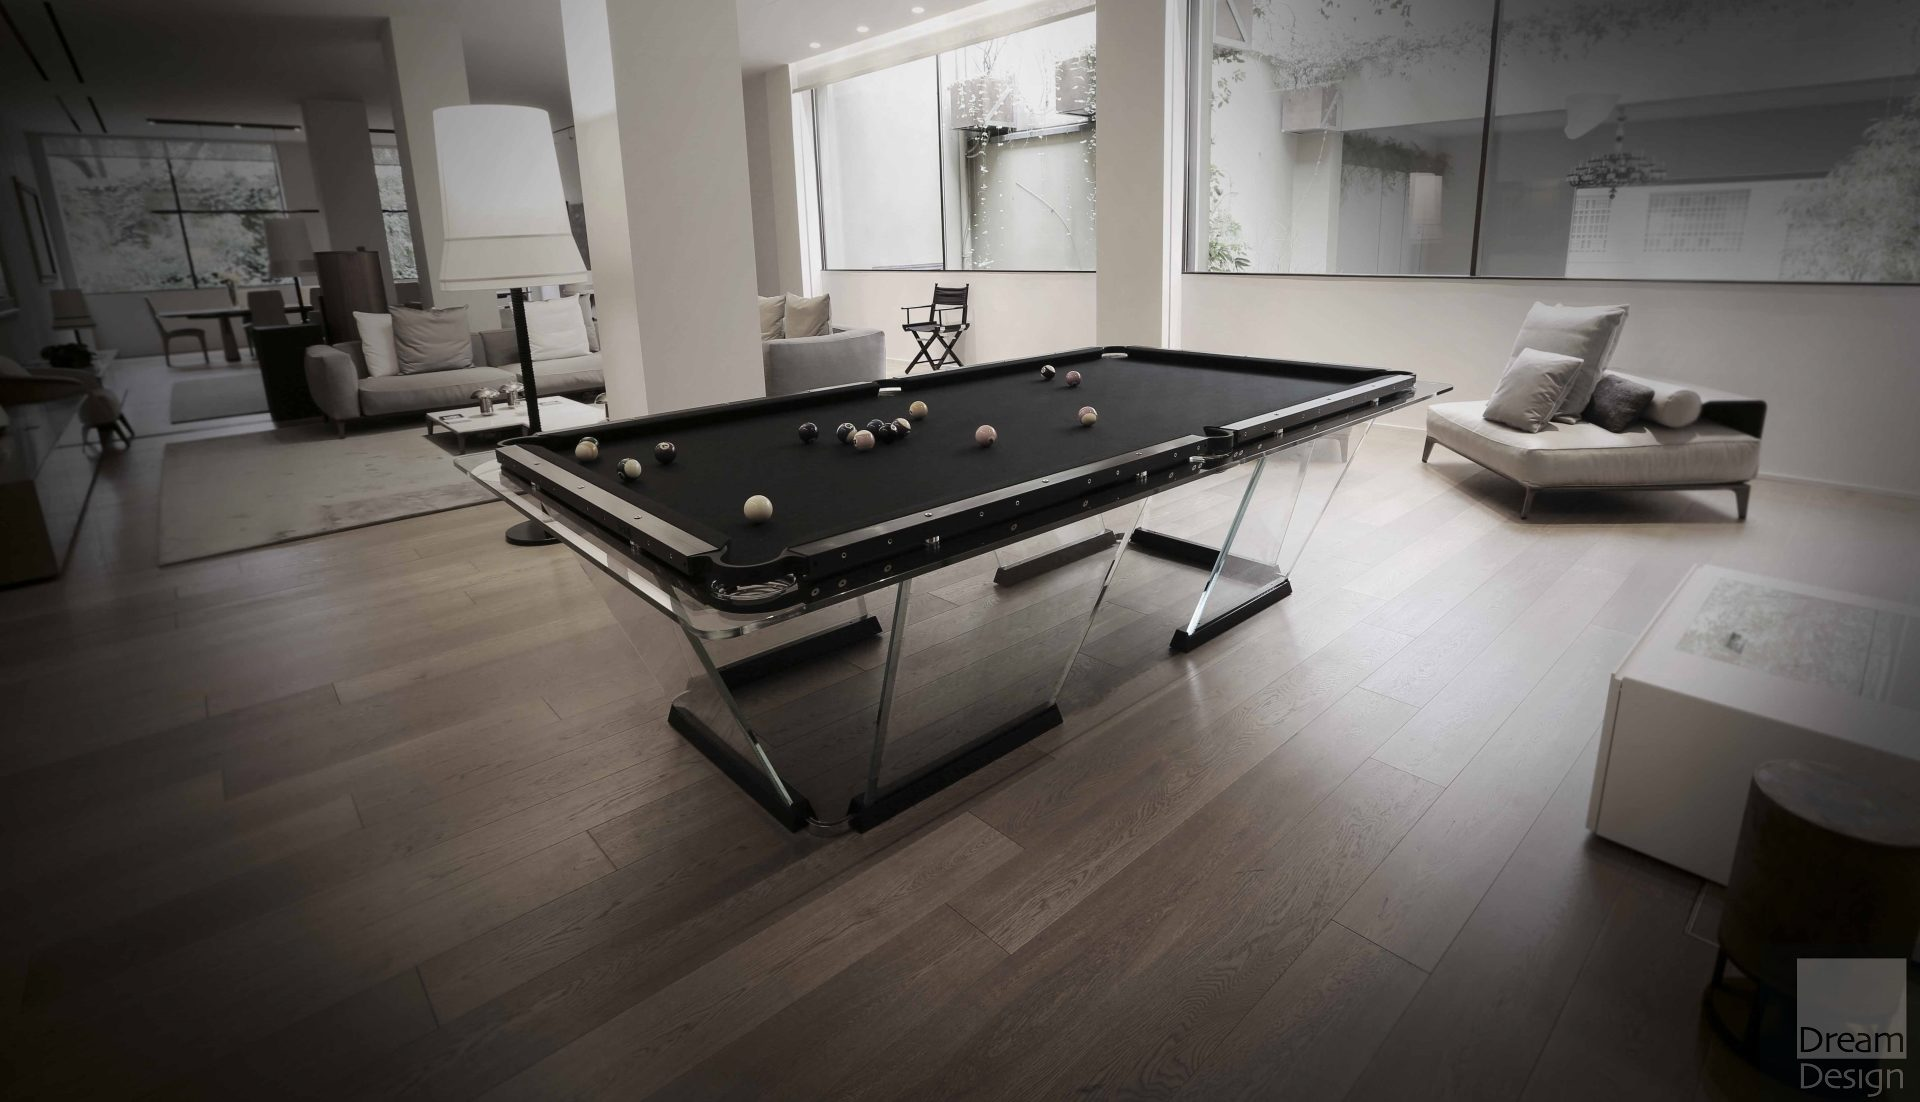 Teckell T1.1 Black Pool Table